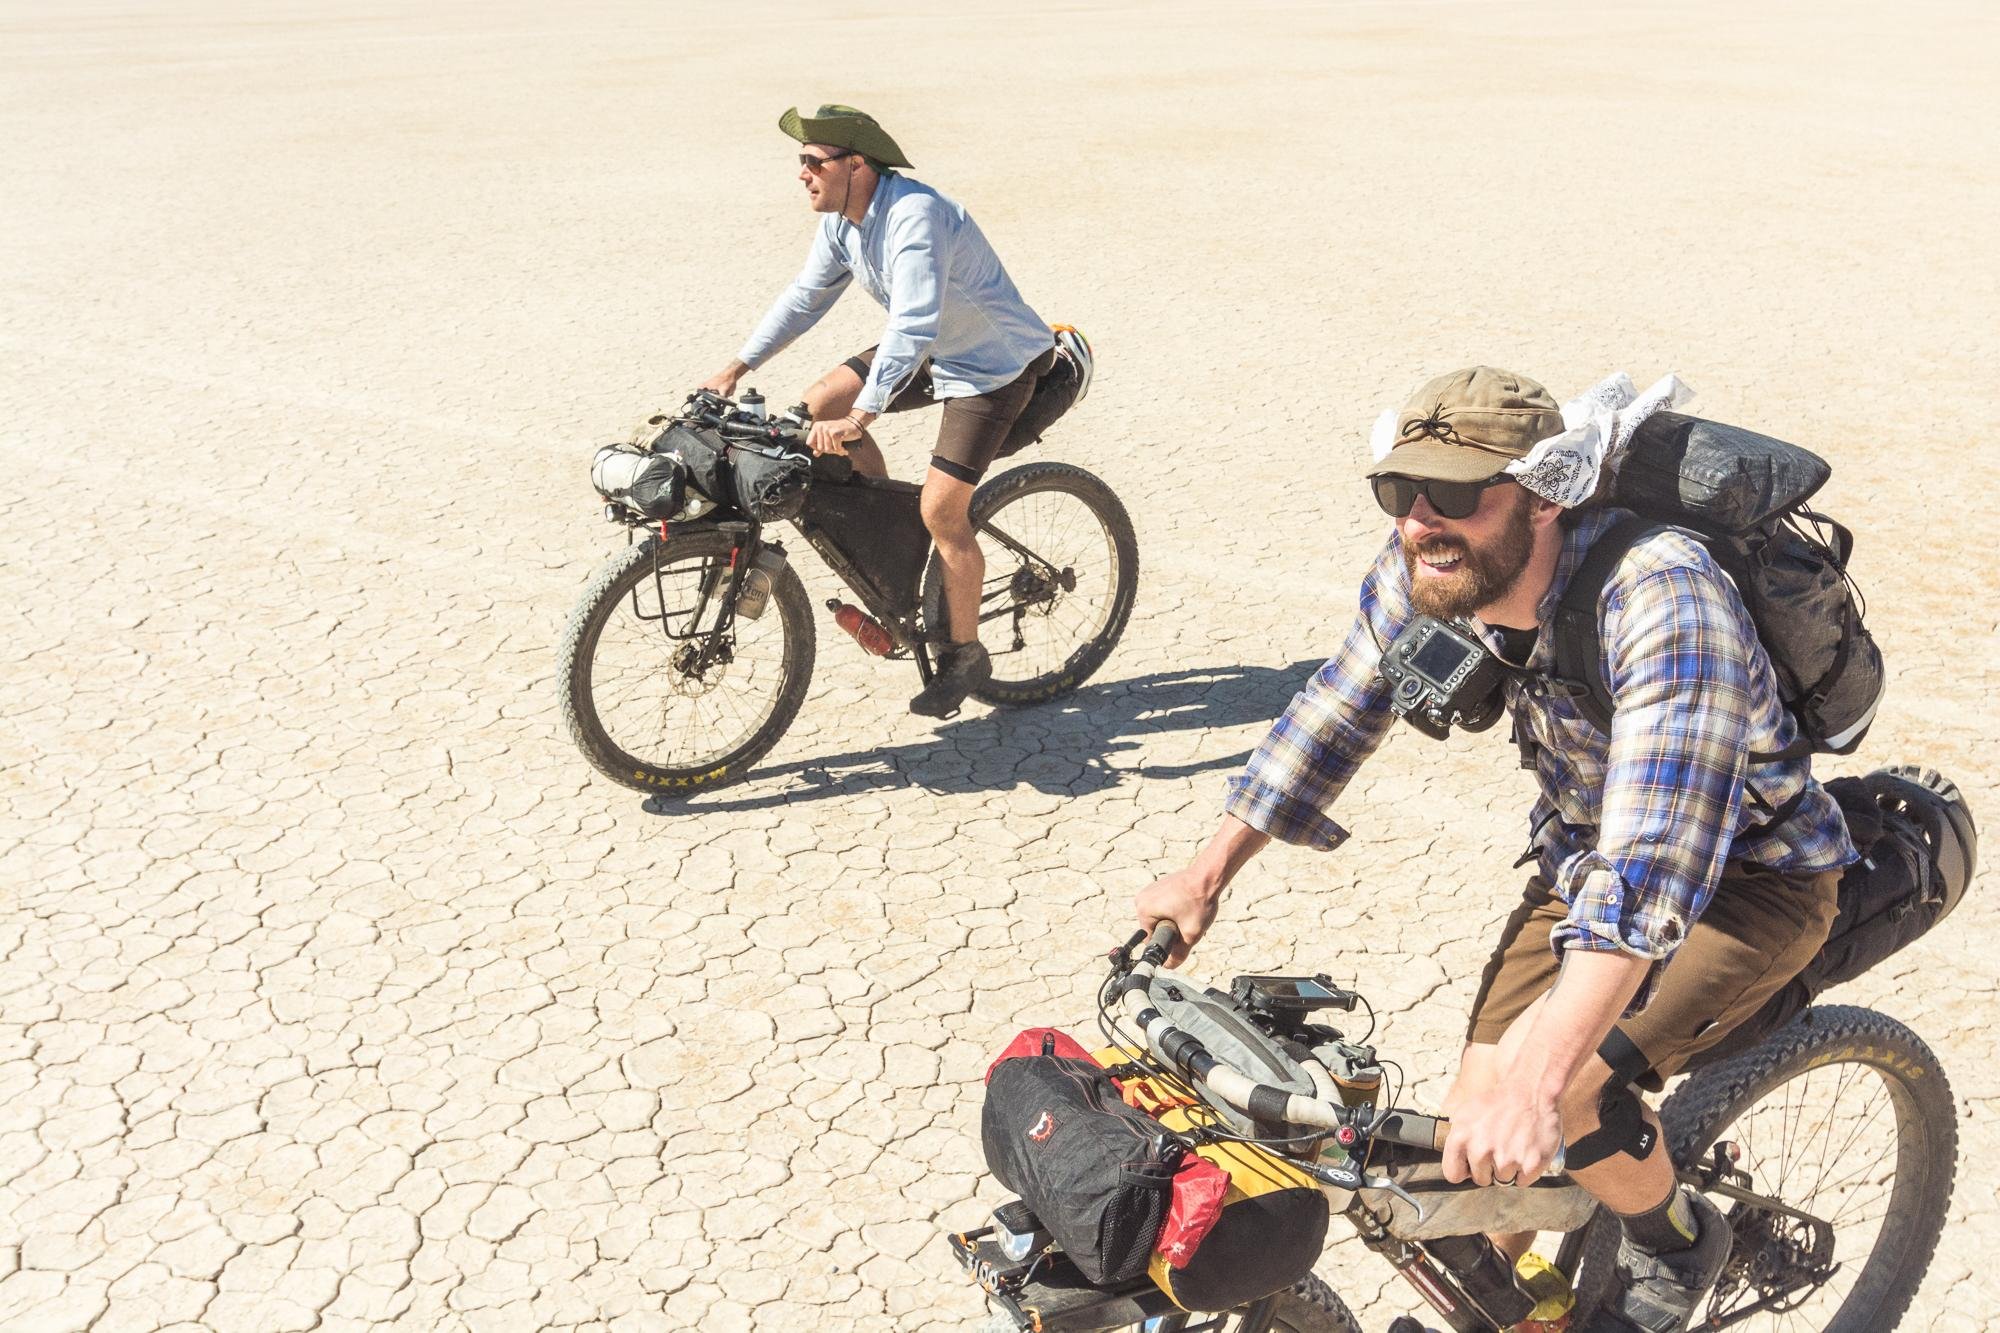 Finding our way across the expanse of the Alvord Desert